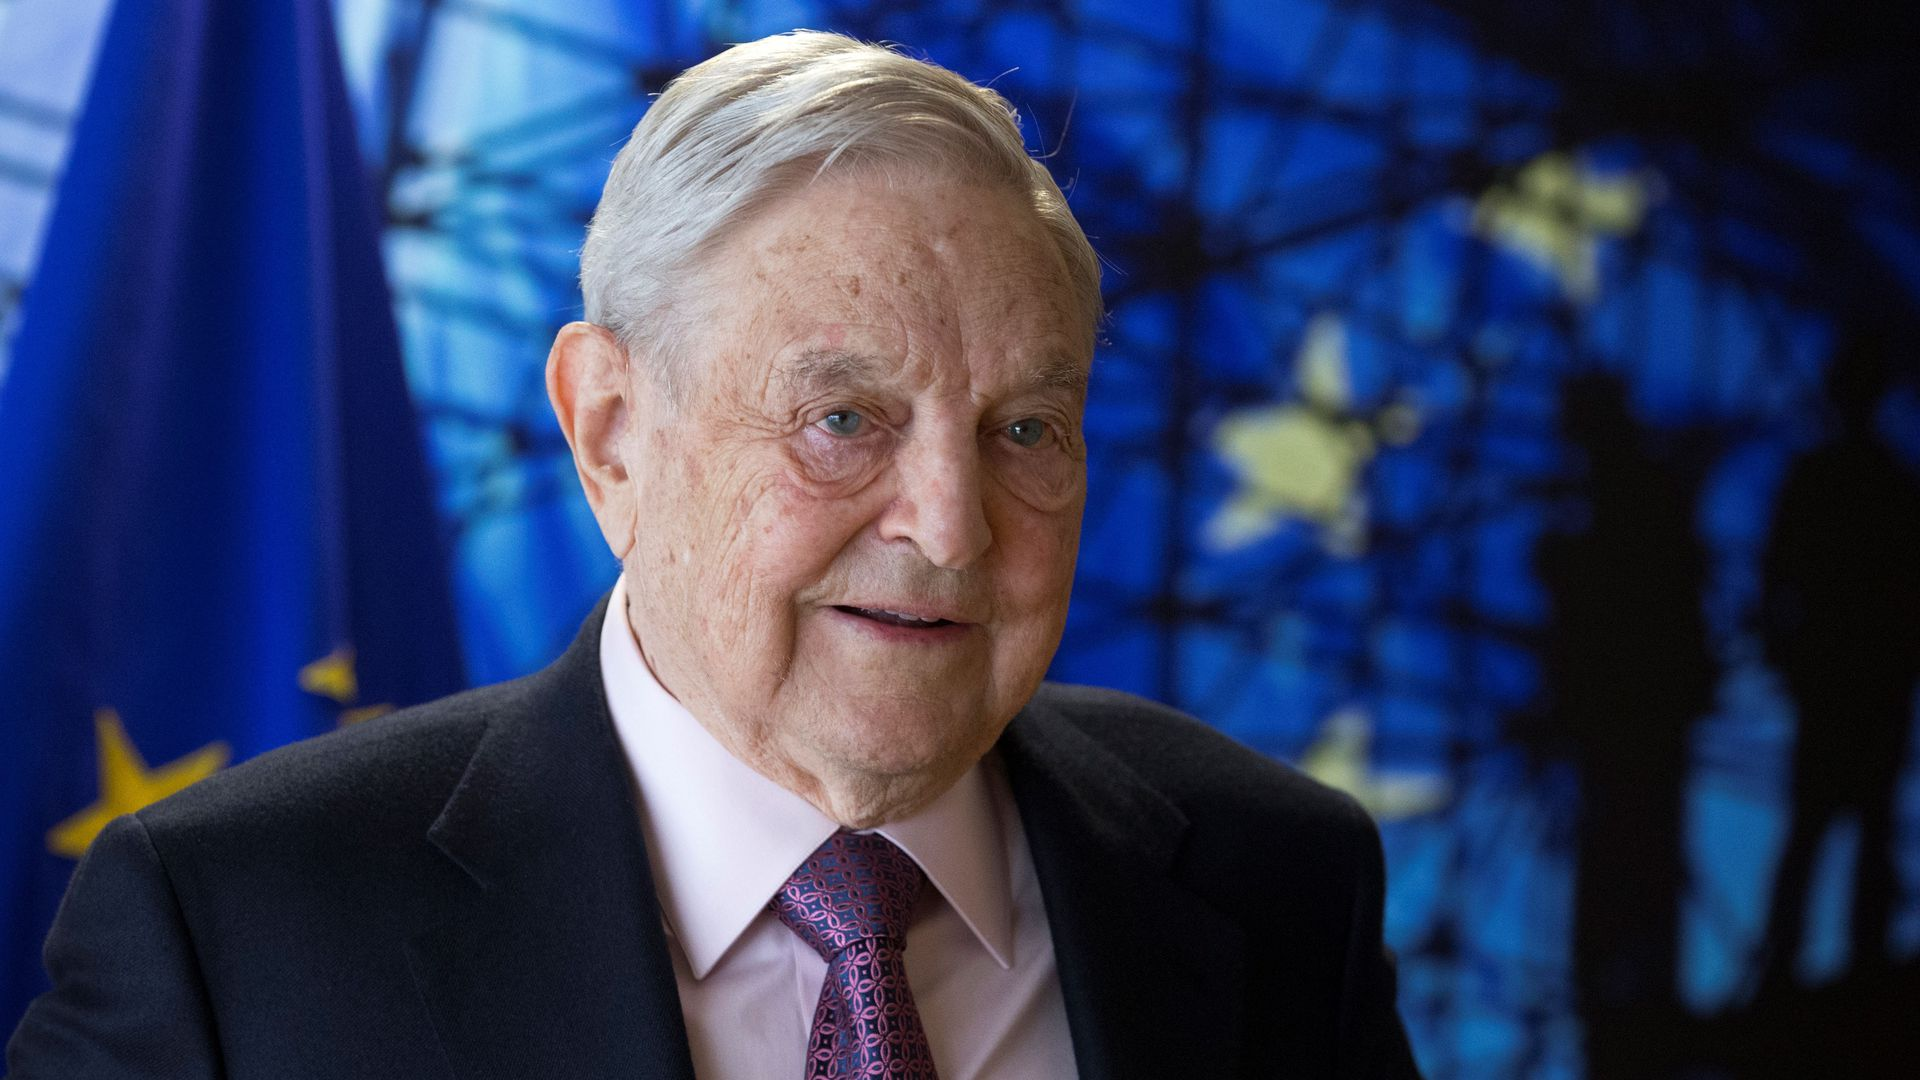 George Soros in front of the flag of the European Union